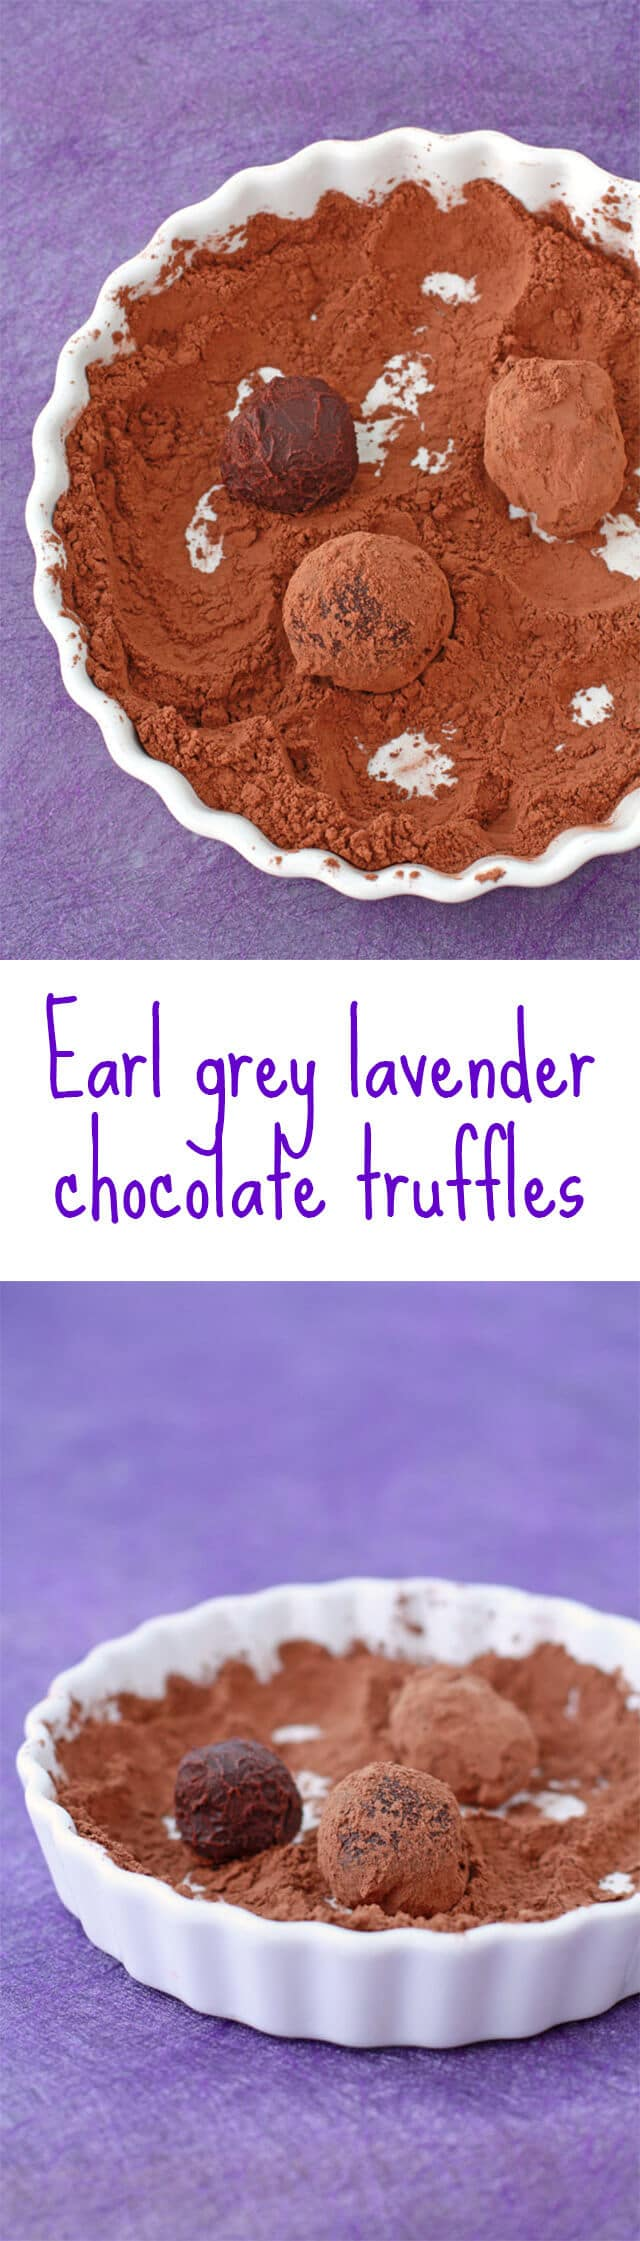 Easy chocolate truffles recipe flavoured with Earl grey lavender tea, but you can make plain chocolate truffles too if you prefer